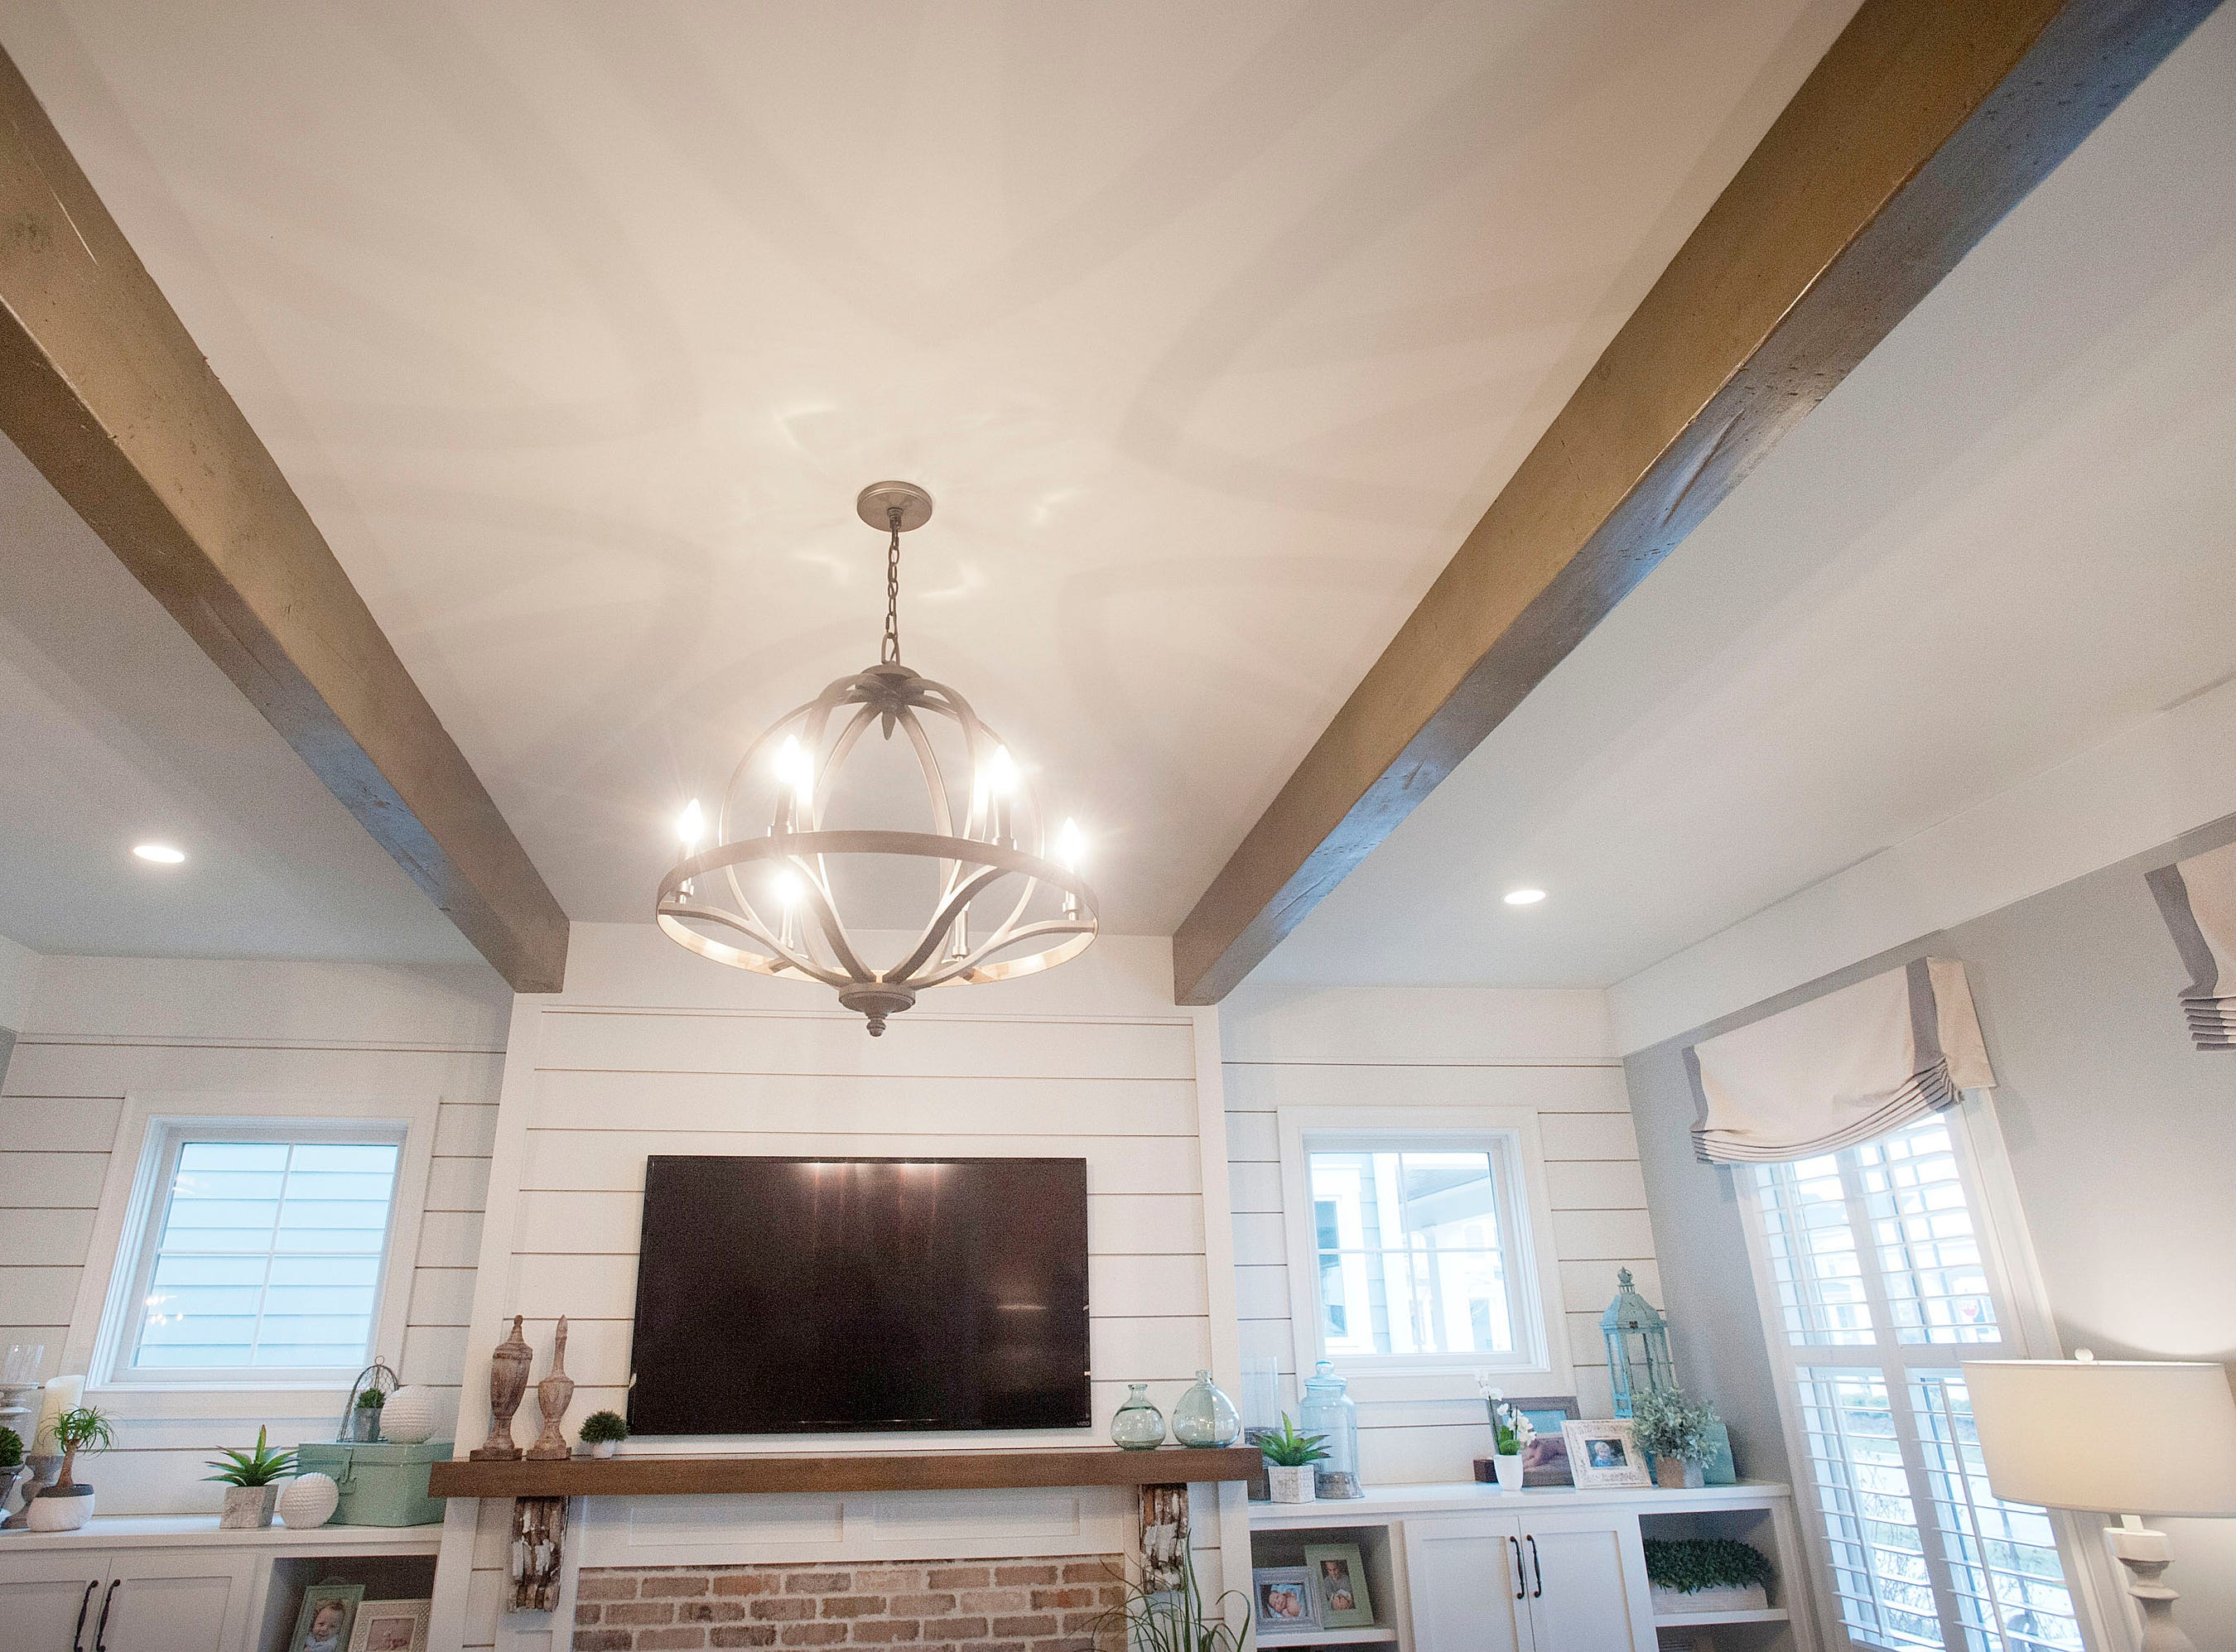 The Hannah living room features decorative wood beams.01 March 2019